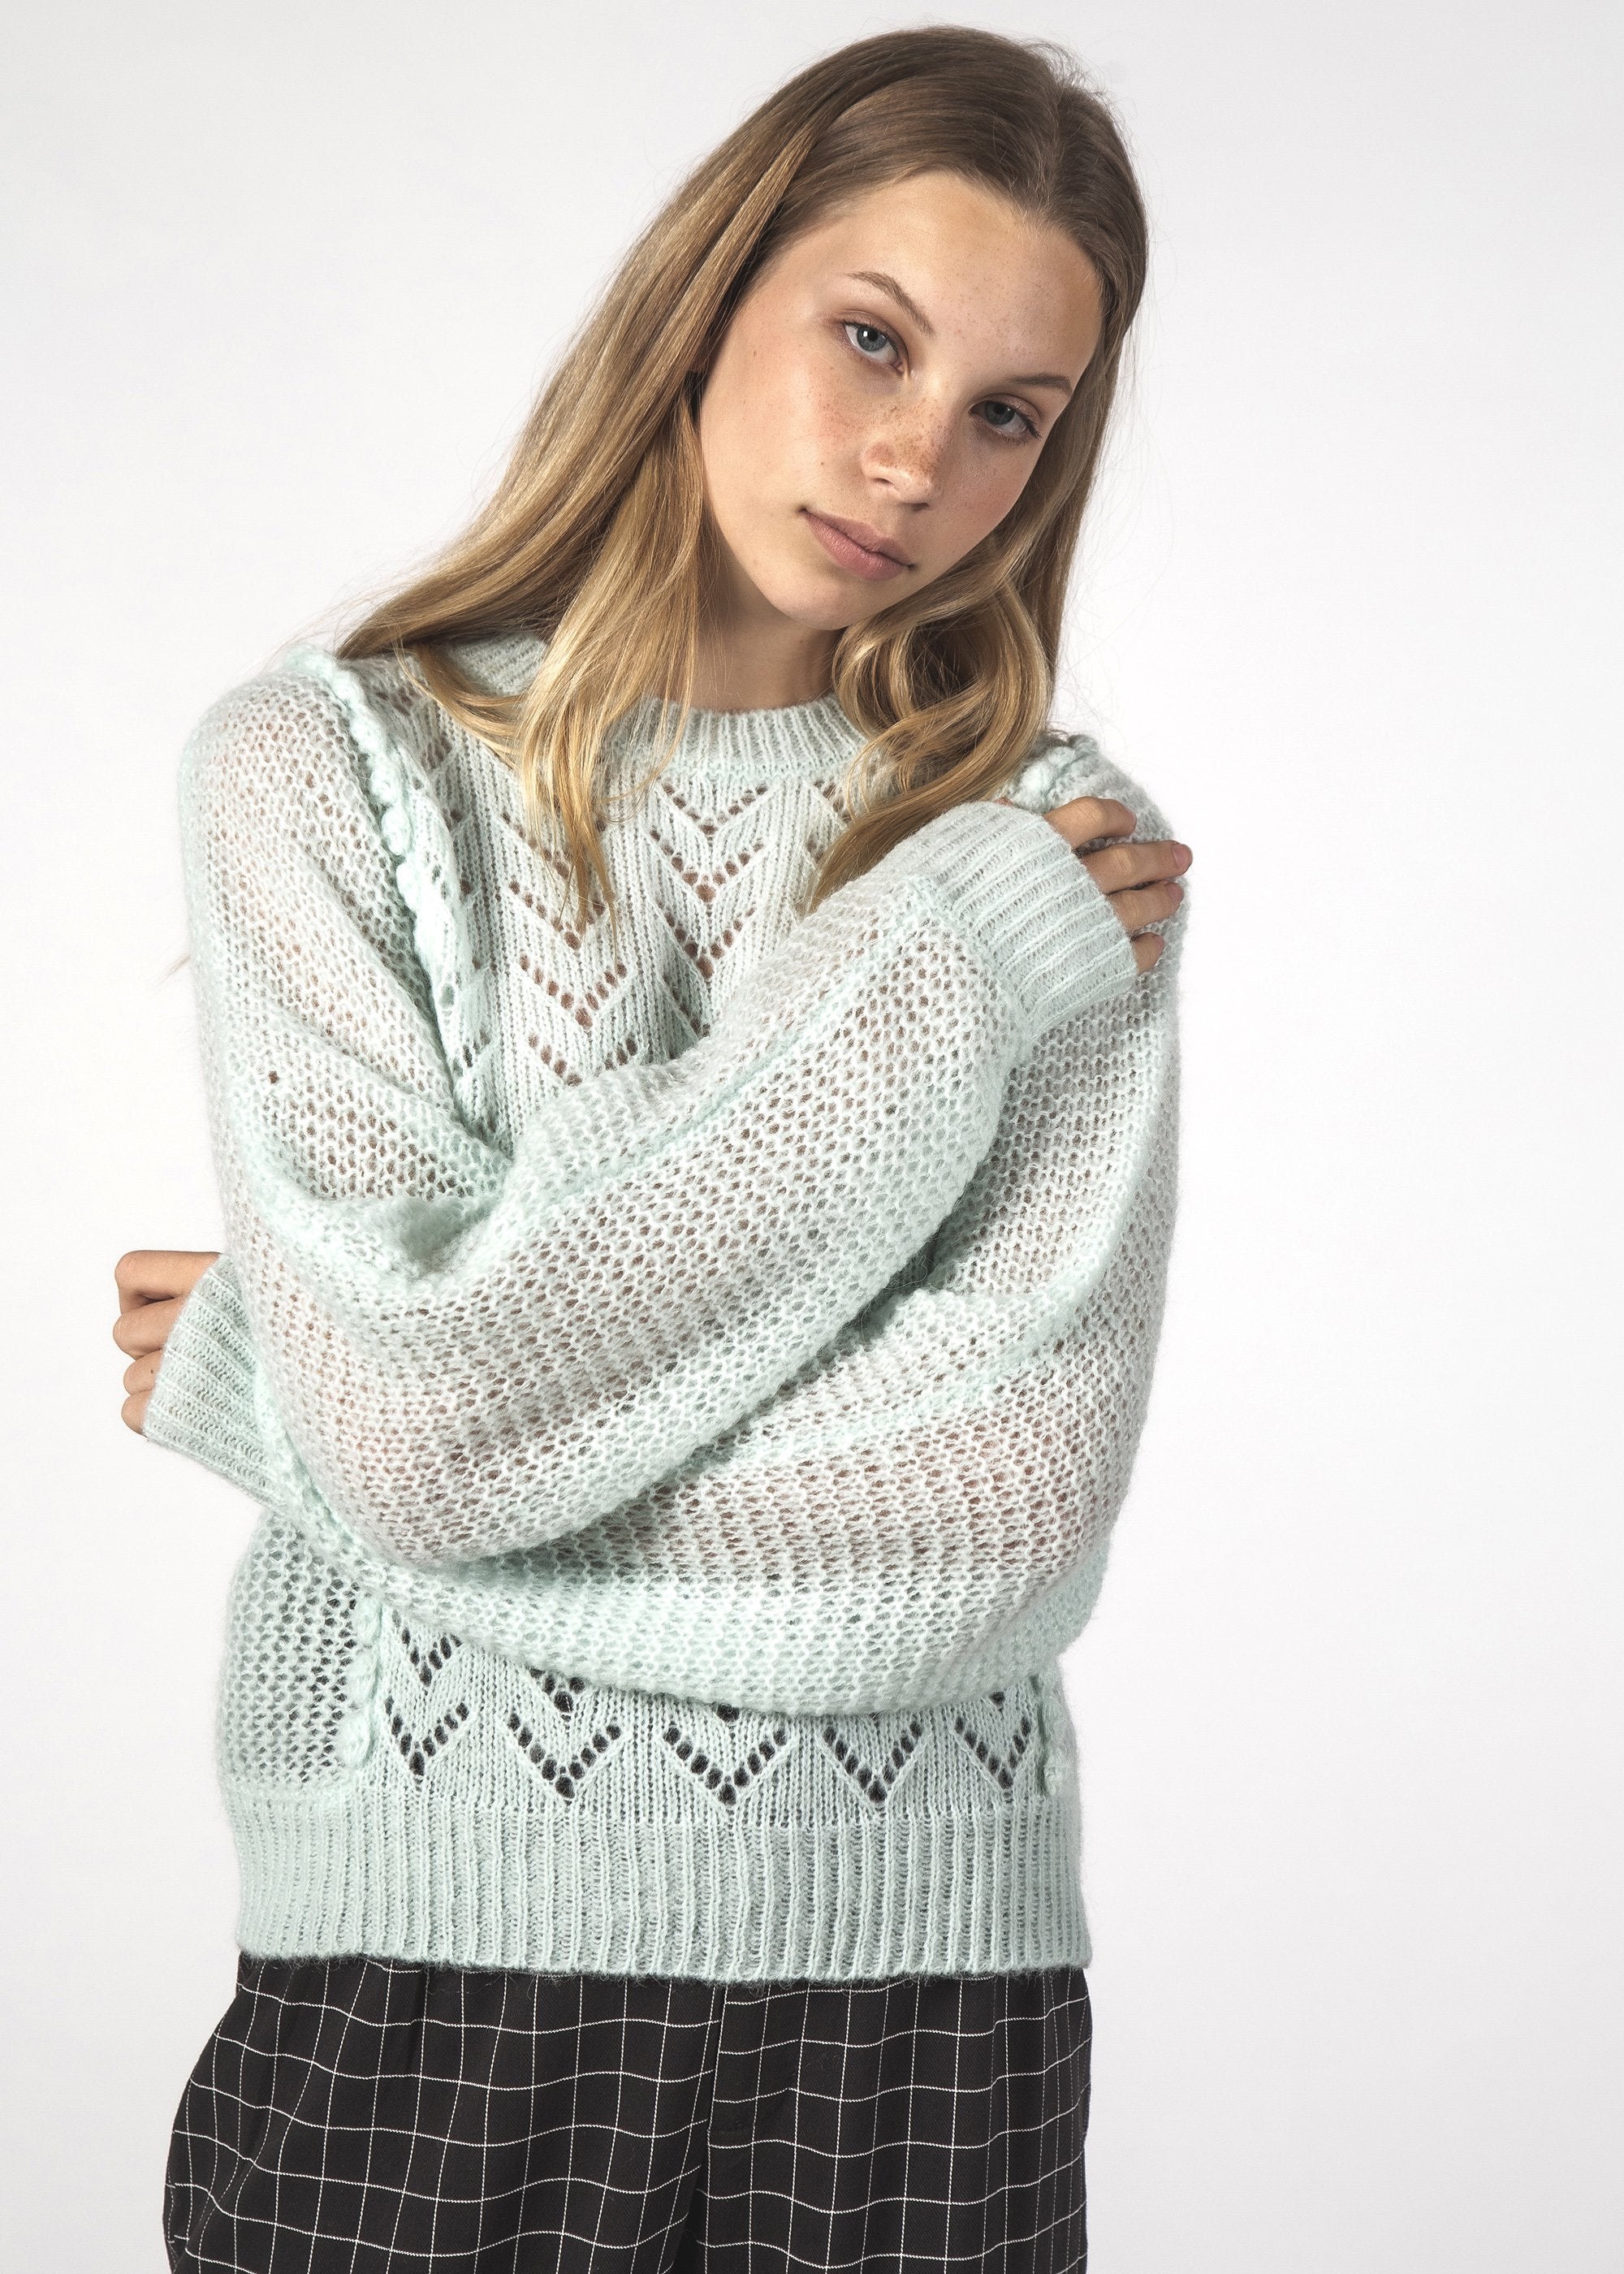 SALE - BOBBY JUMPER - Icey